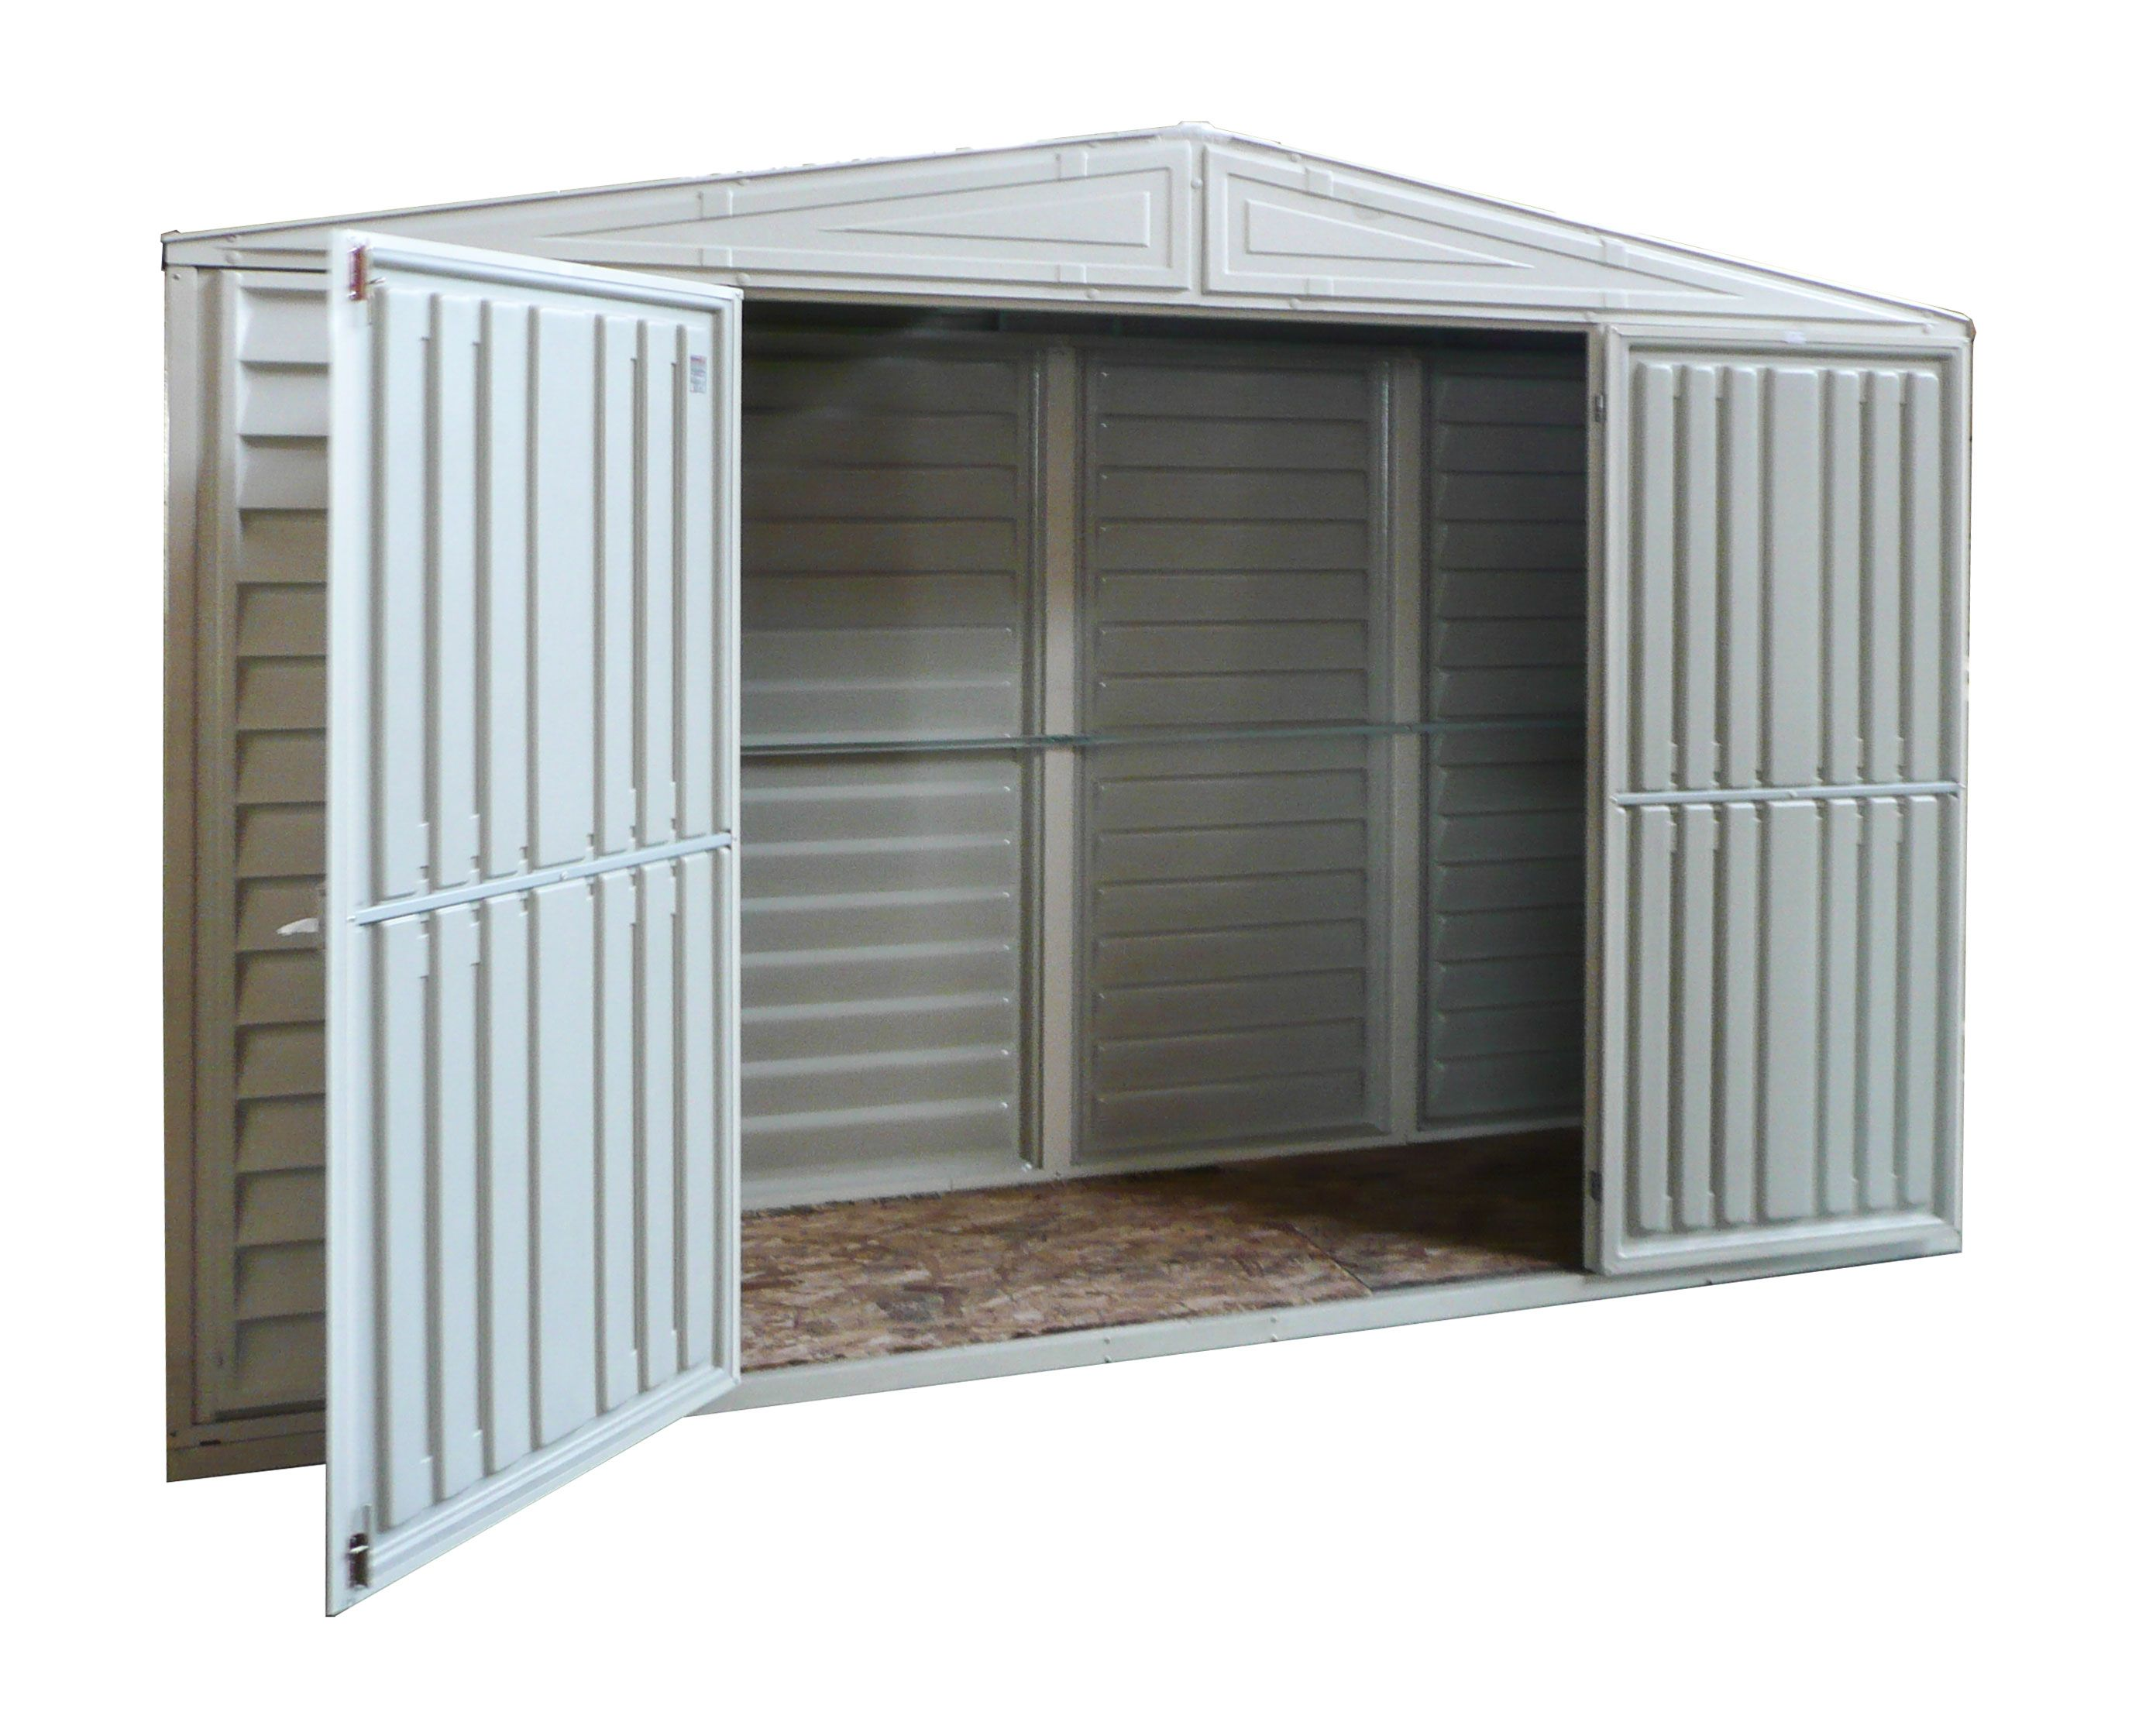 The 10 5x2 5 Sidepro Vinyl Shed Perfect For Small Spaces Features Wide Double Doors Base Frame The Most Durabl Vinyl Sheds Vinyl Storage Sheds Shed Storage